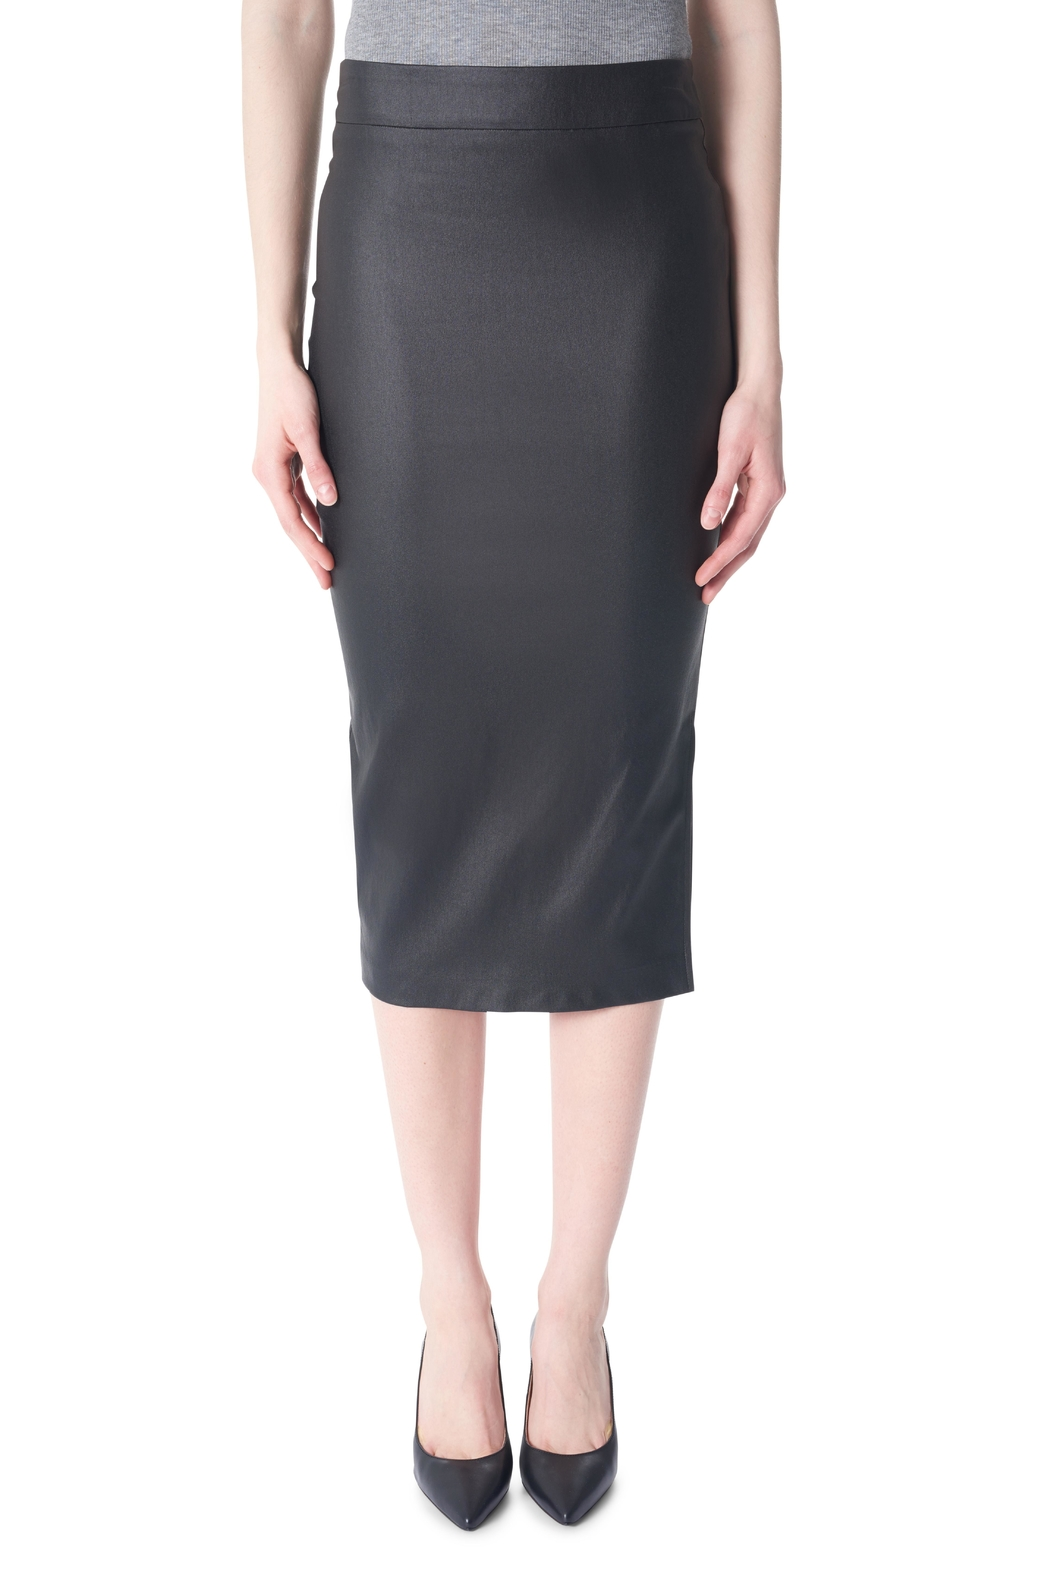 Tyler Madison Waxed Pencil Skirt - Front Cropped Image